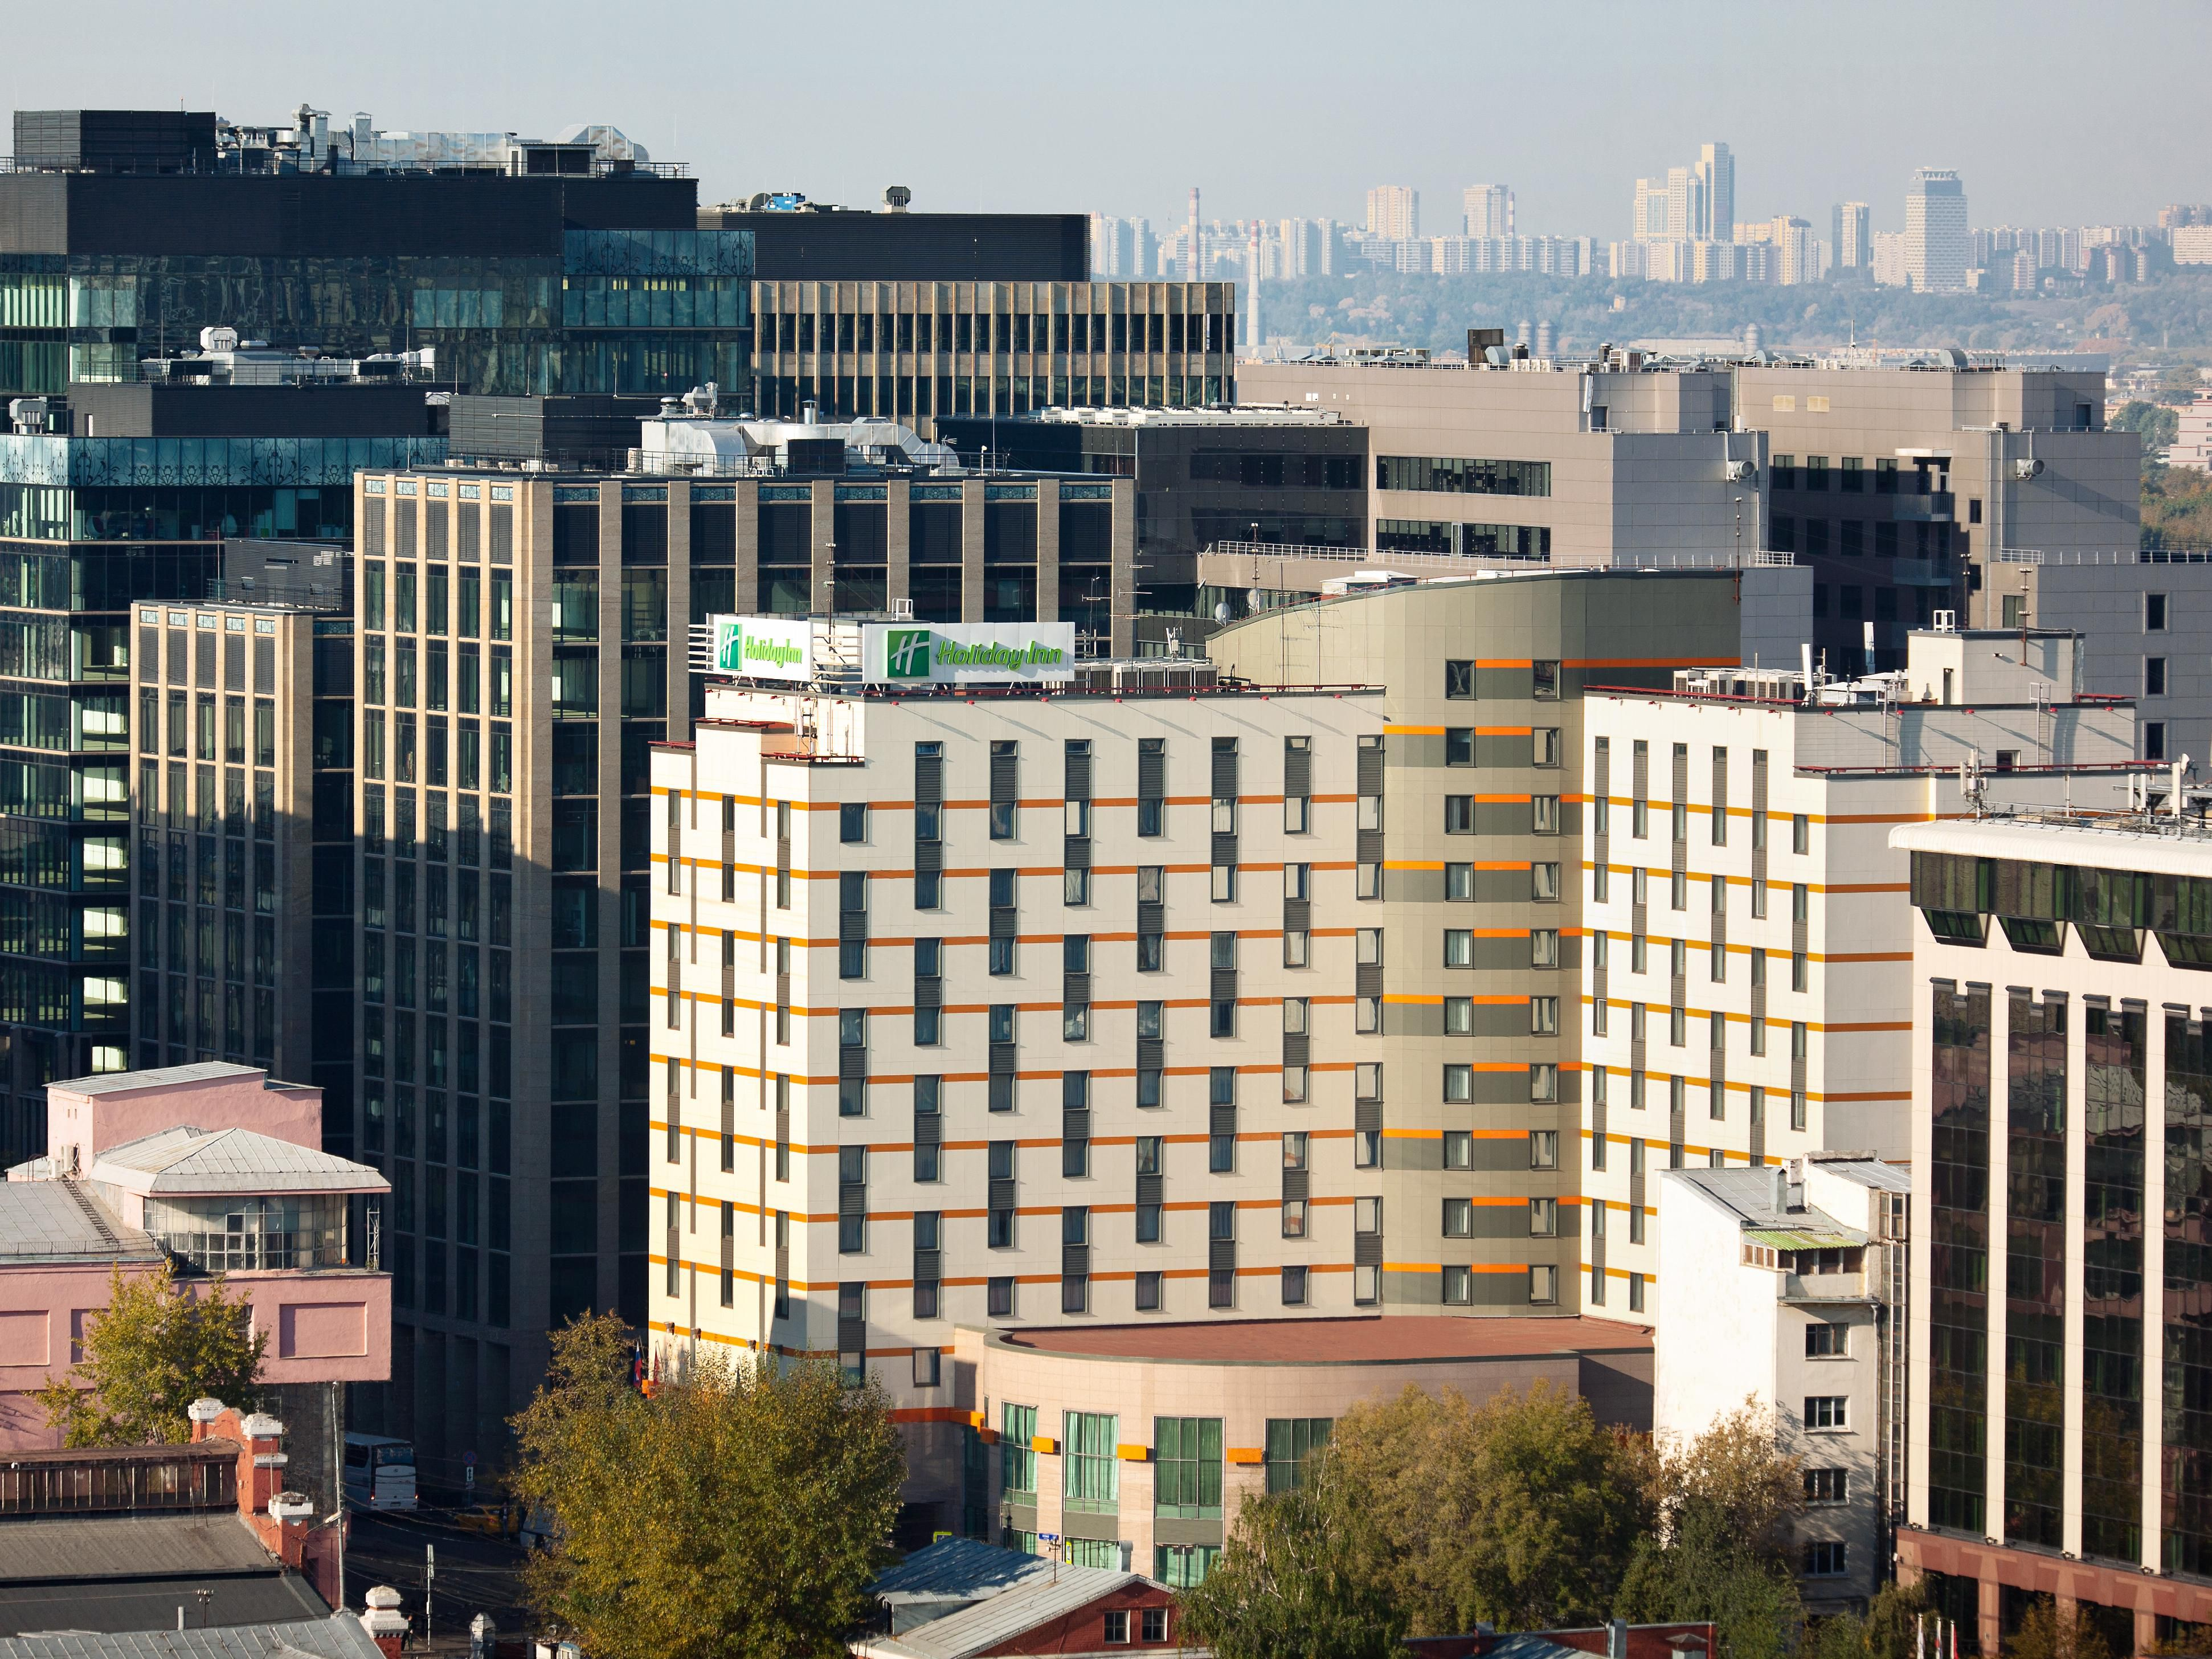 Enjoy a bird's-eye view of Holiday Inn Moscow Lesnaya